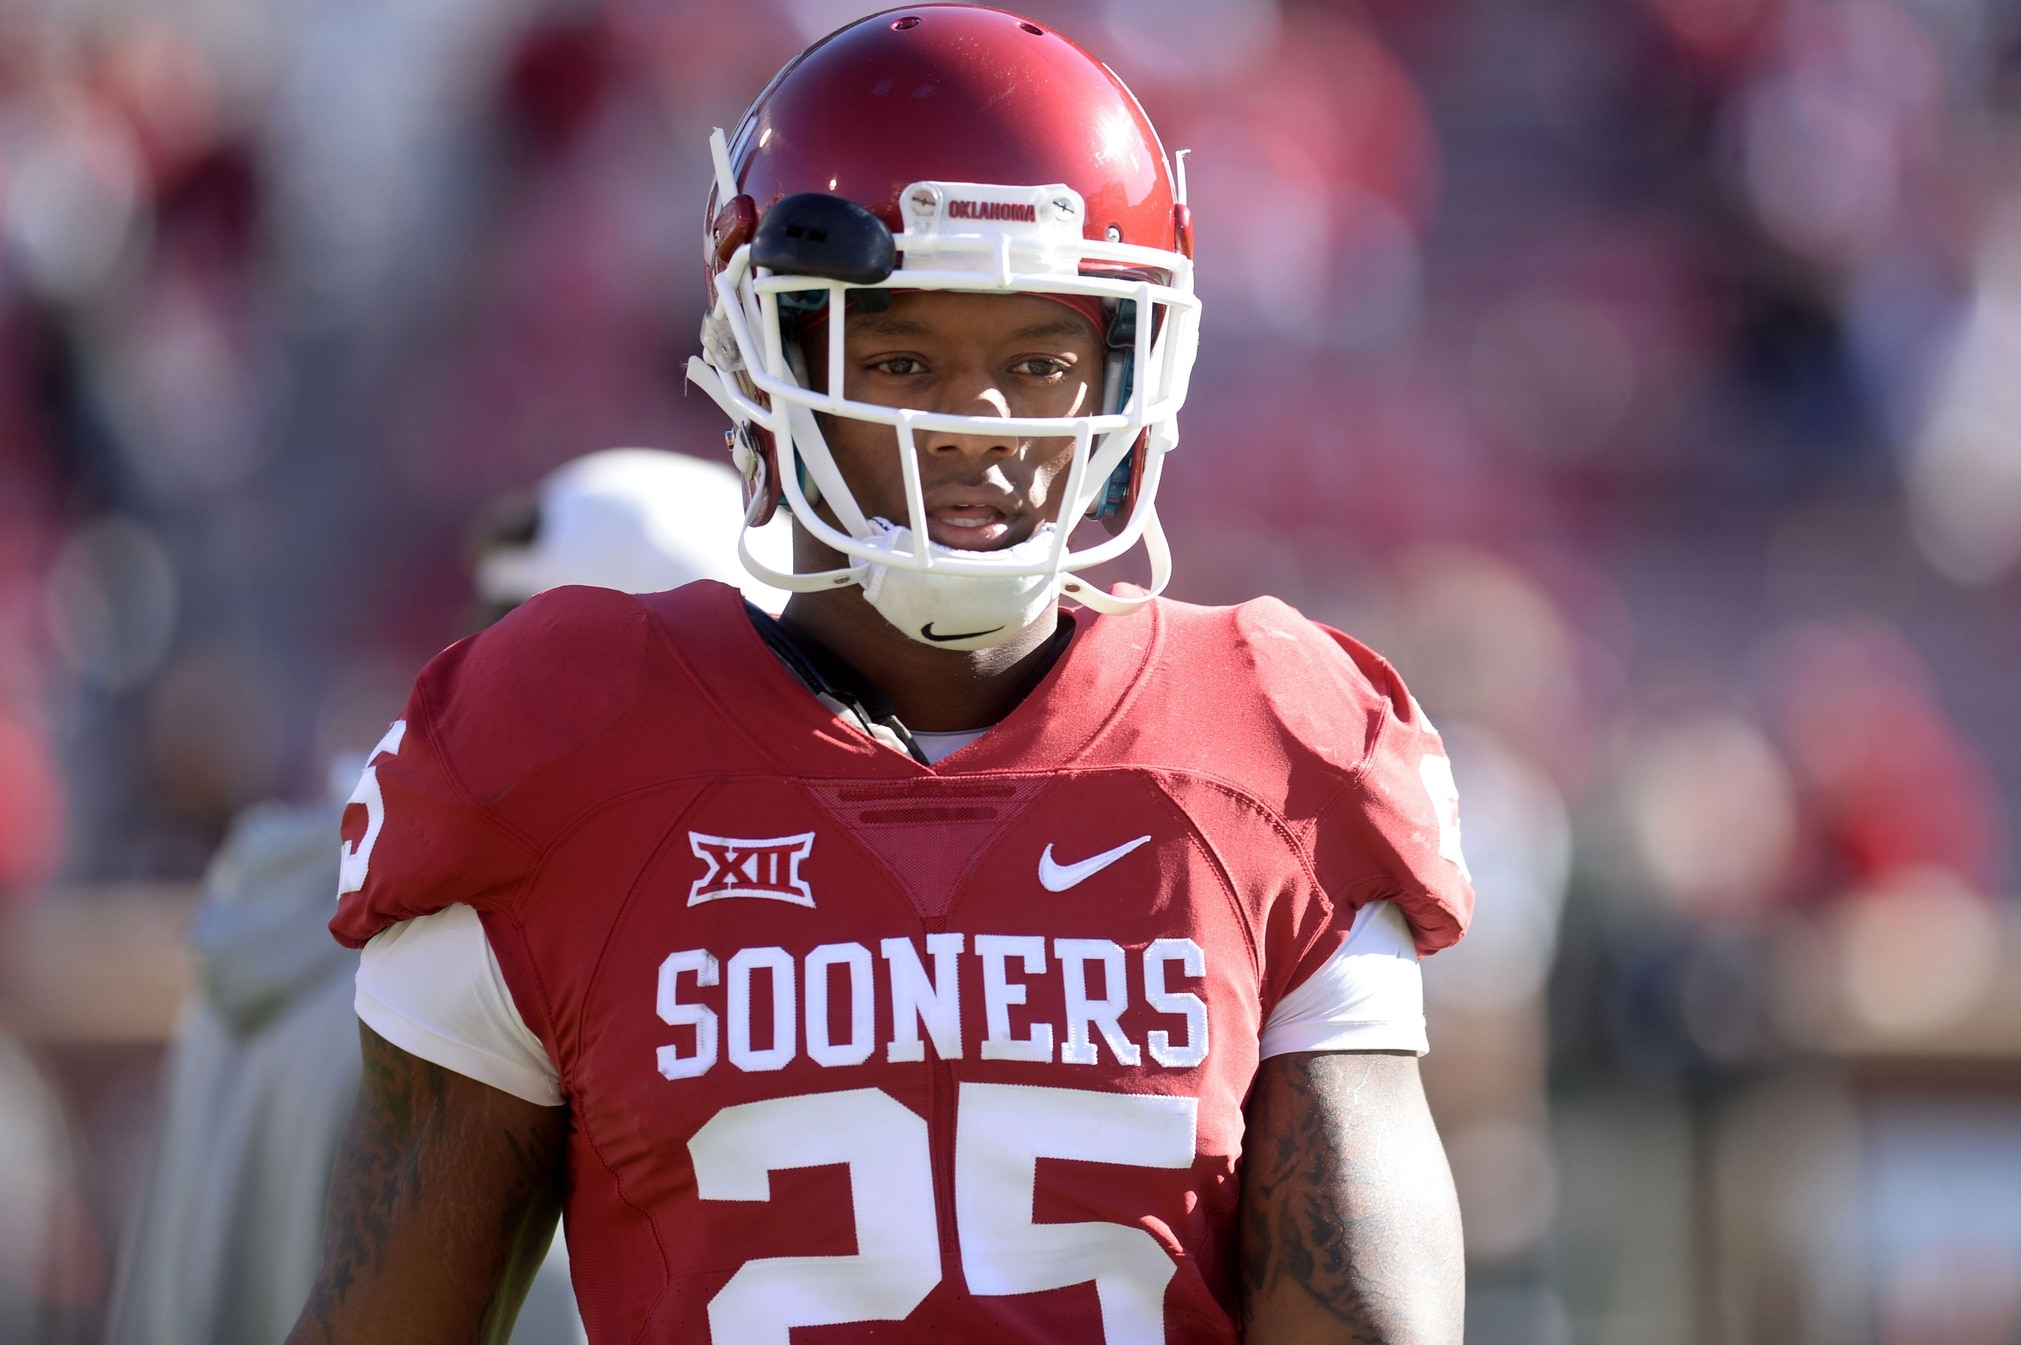 NFL Draft rumors, Joe Mixon